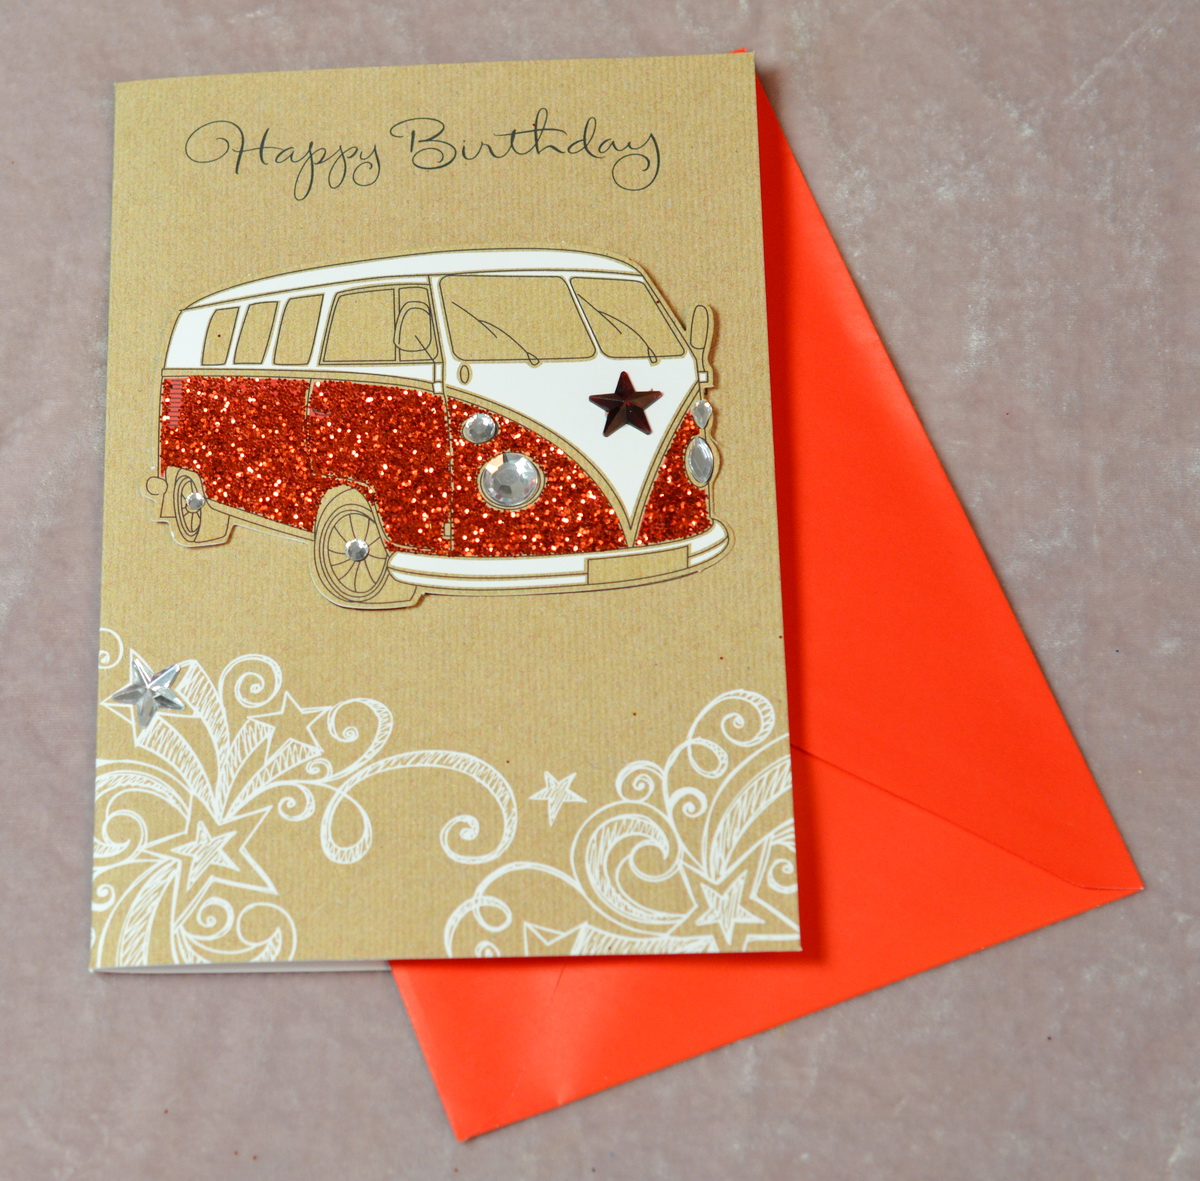 Handmade Greeting Cards Blog Birthday Cards For Men – Birthday Cards for Men